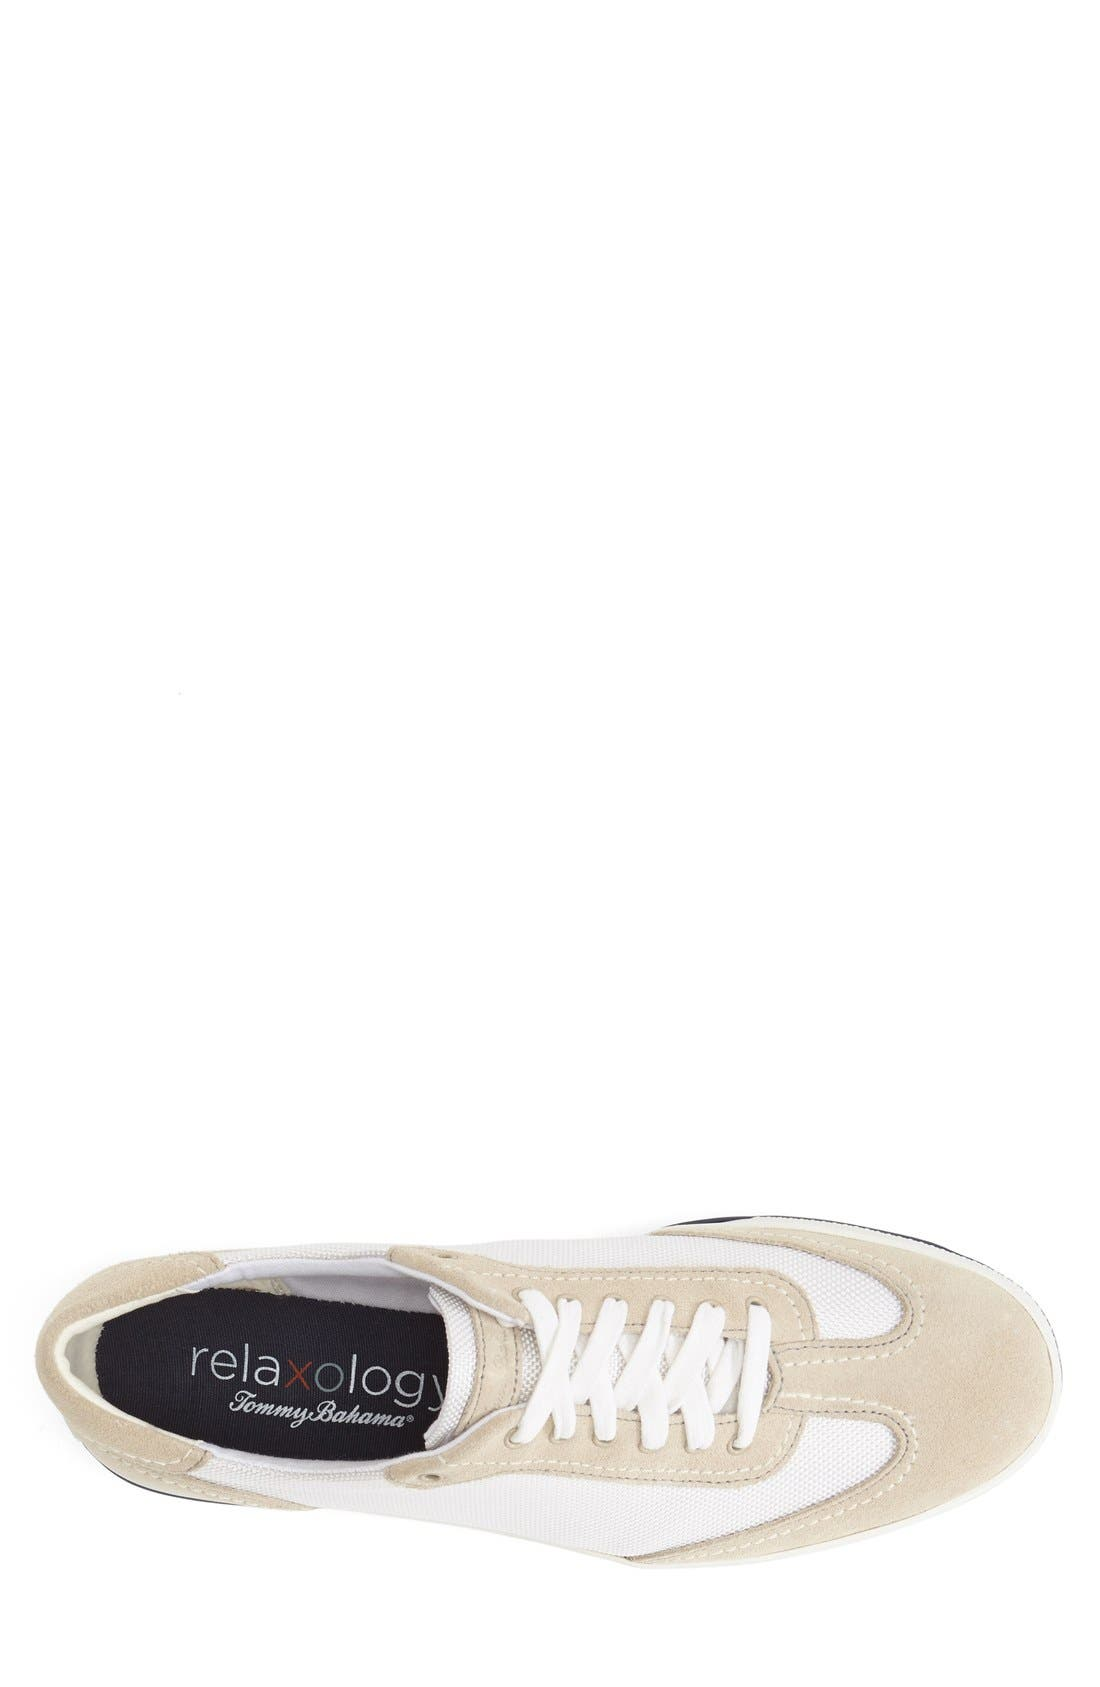 TOMMY BAHAMA,                             'Relaxology Collection - Roaderick' Sneaker,                             Alternate thumbnail 3, color,                             100